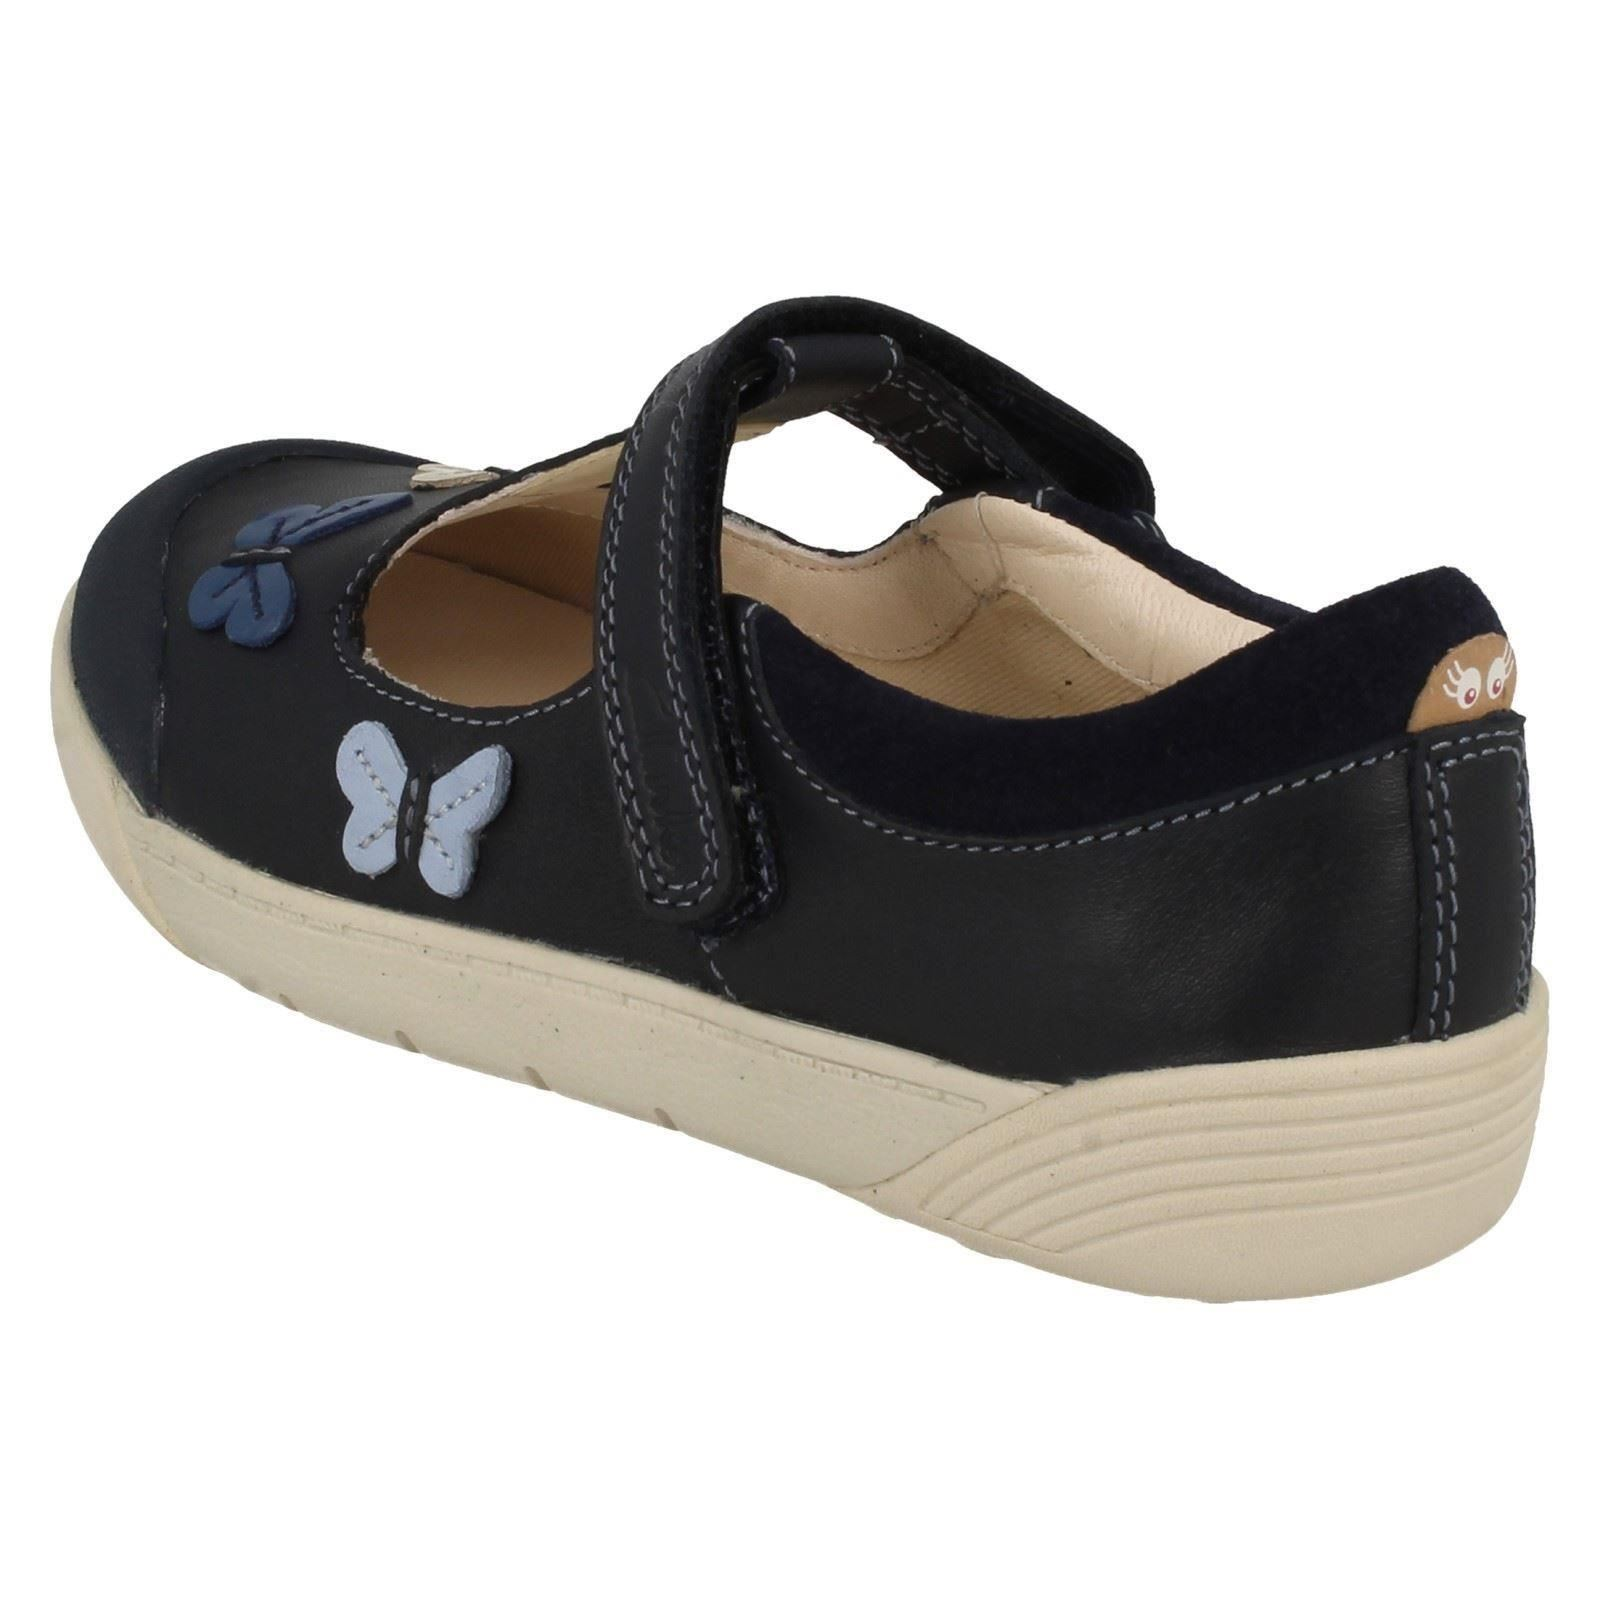 Chicas Clarks Zapatos T-Bar * lilfolk Flo *